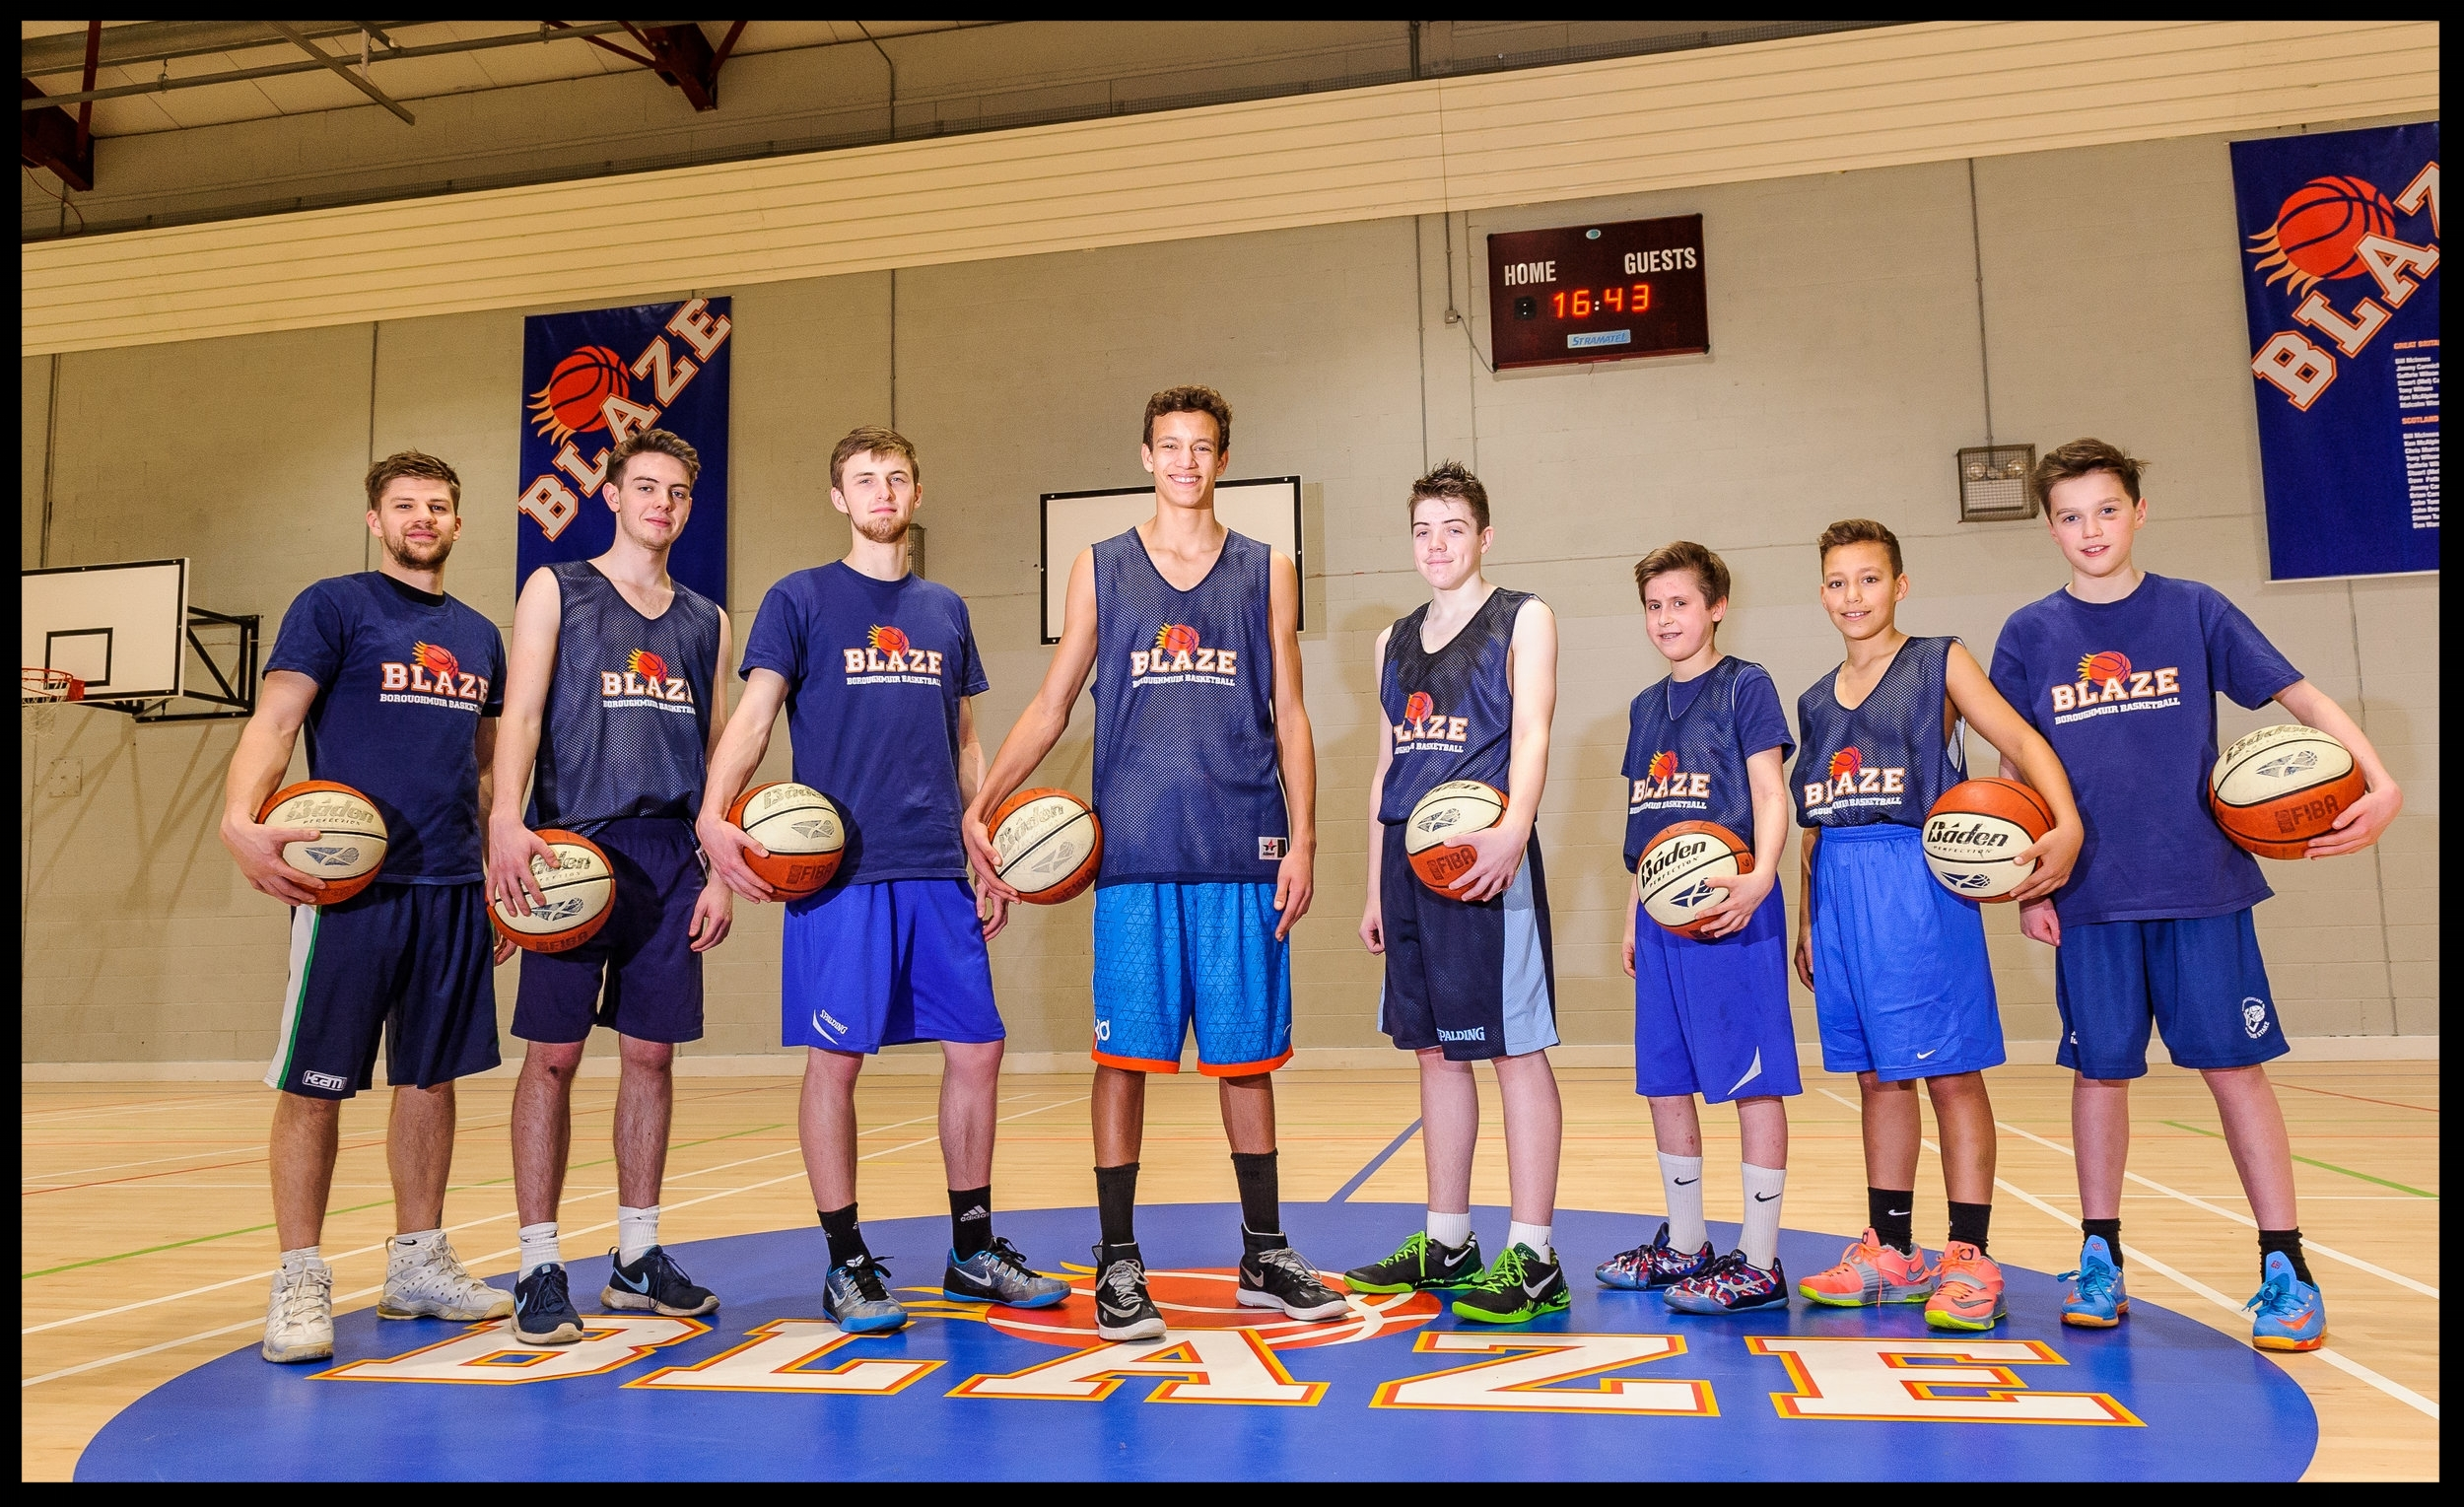 BLAZE MALE SQUADS - U12 Boys, U14 Boys, U16 Men, U18 Men and Senior Men Squad for the 2018/19 Season